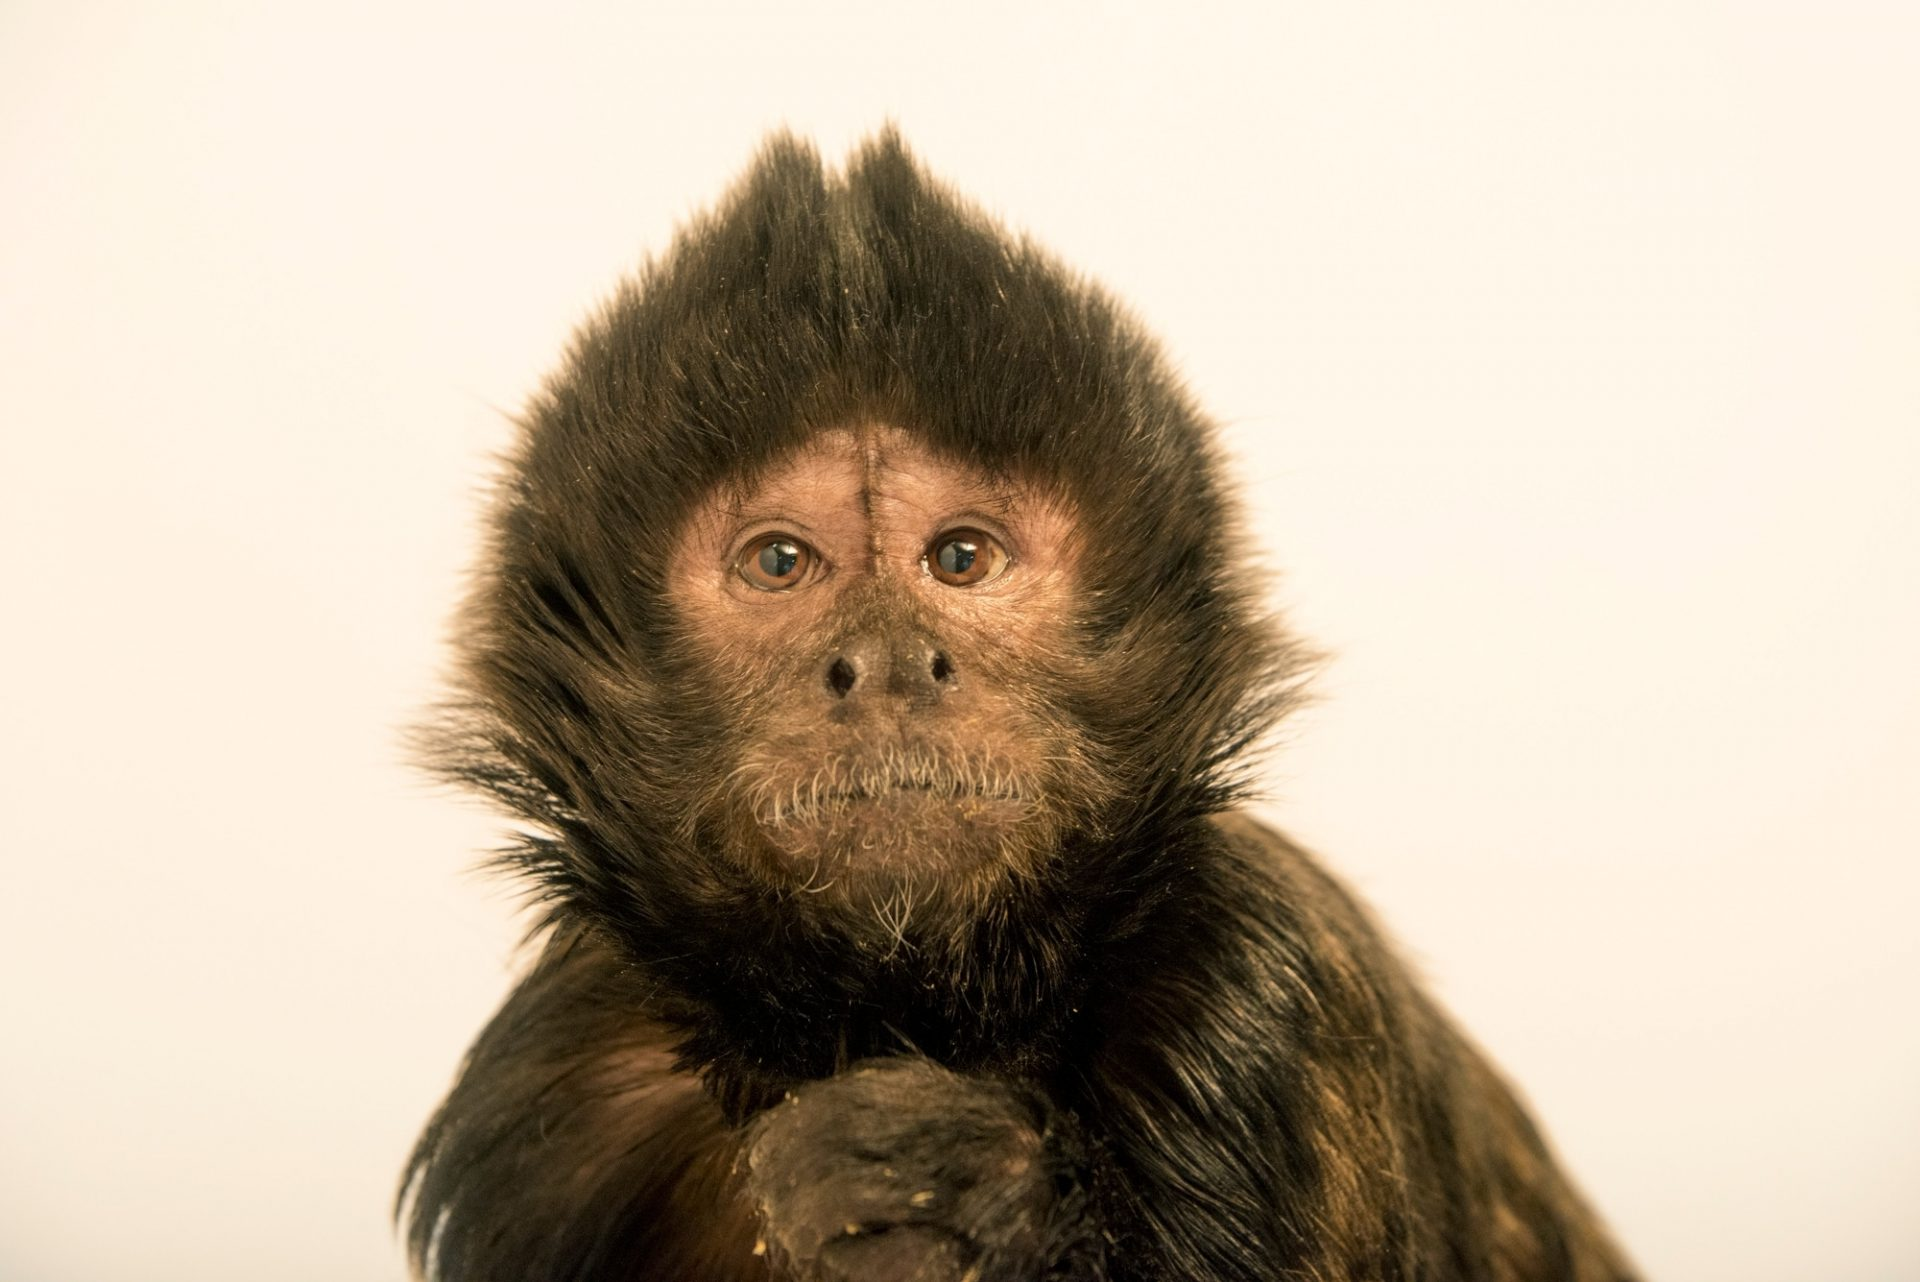 Photo: An endangered crested capuchin named Milo (Sapajus robustus) at the Los Angeles Zoo.